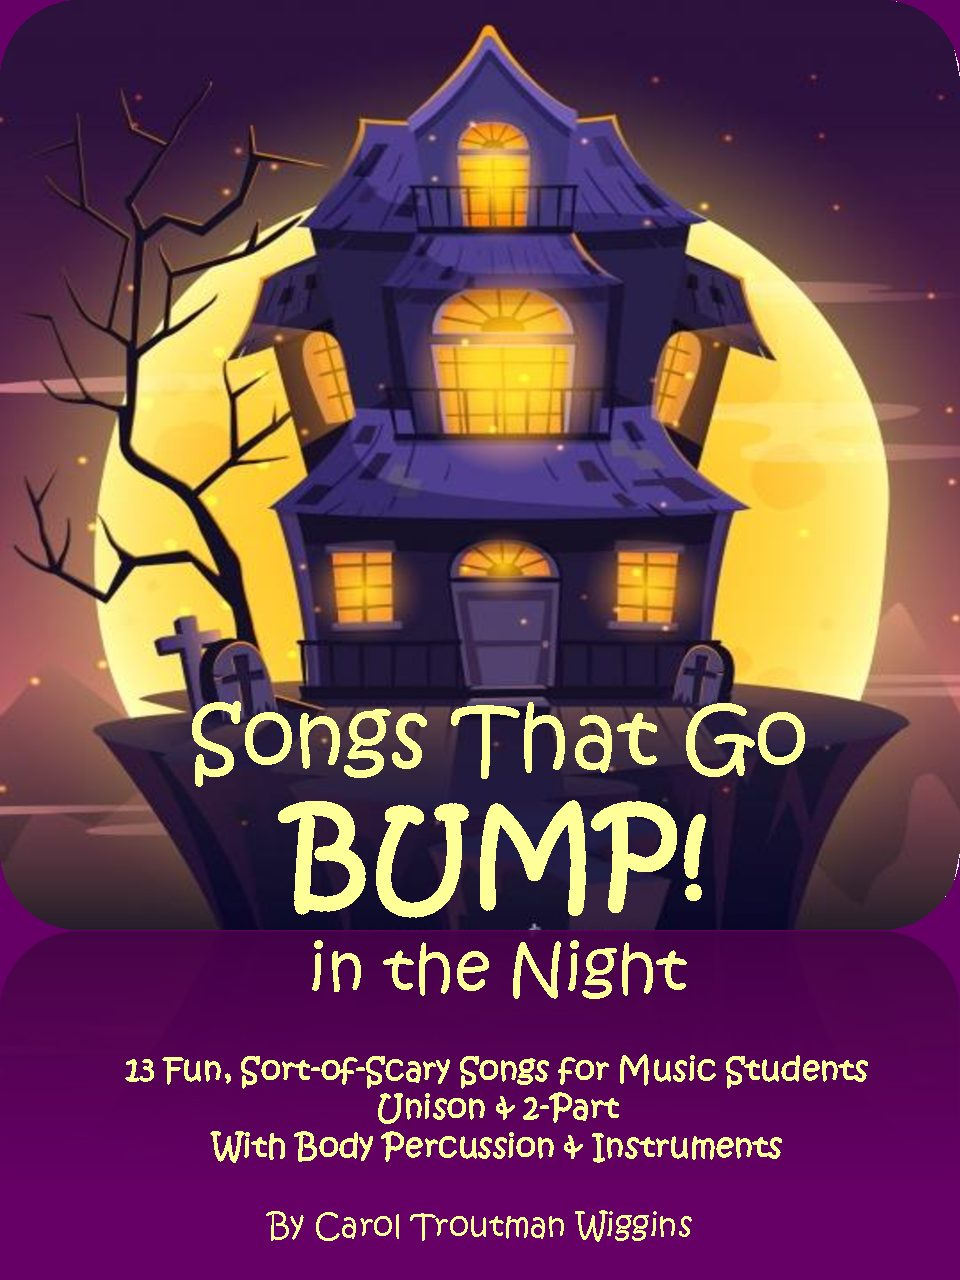 Songs That Go BUMP in the Night (13 Fun, Sort-of-Scary Songs for Music Students)